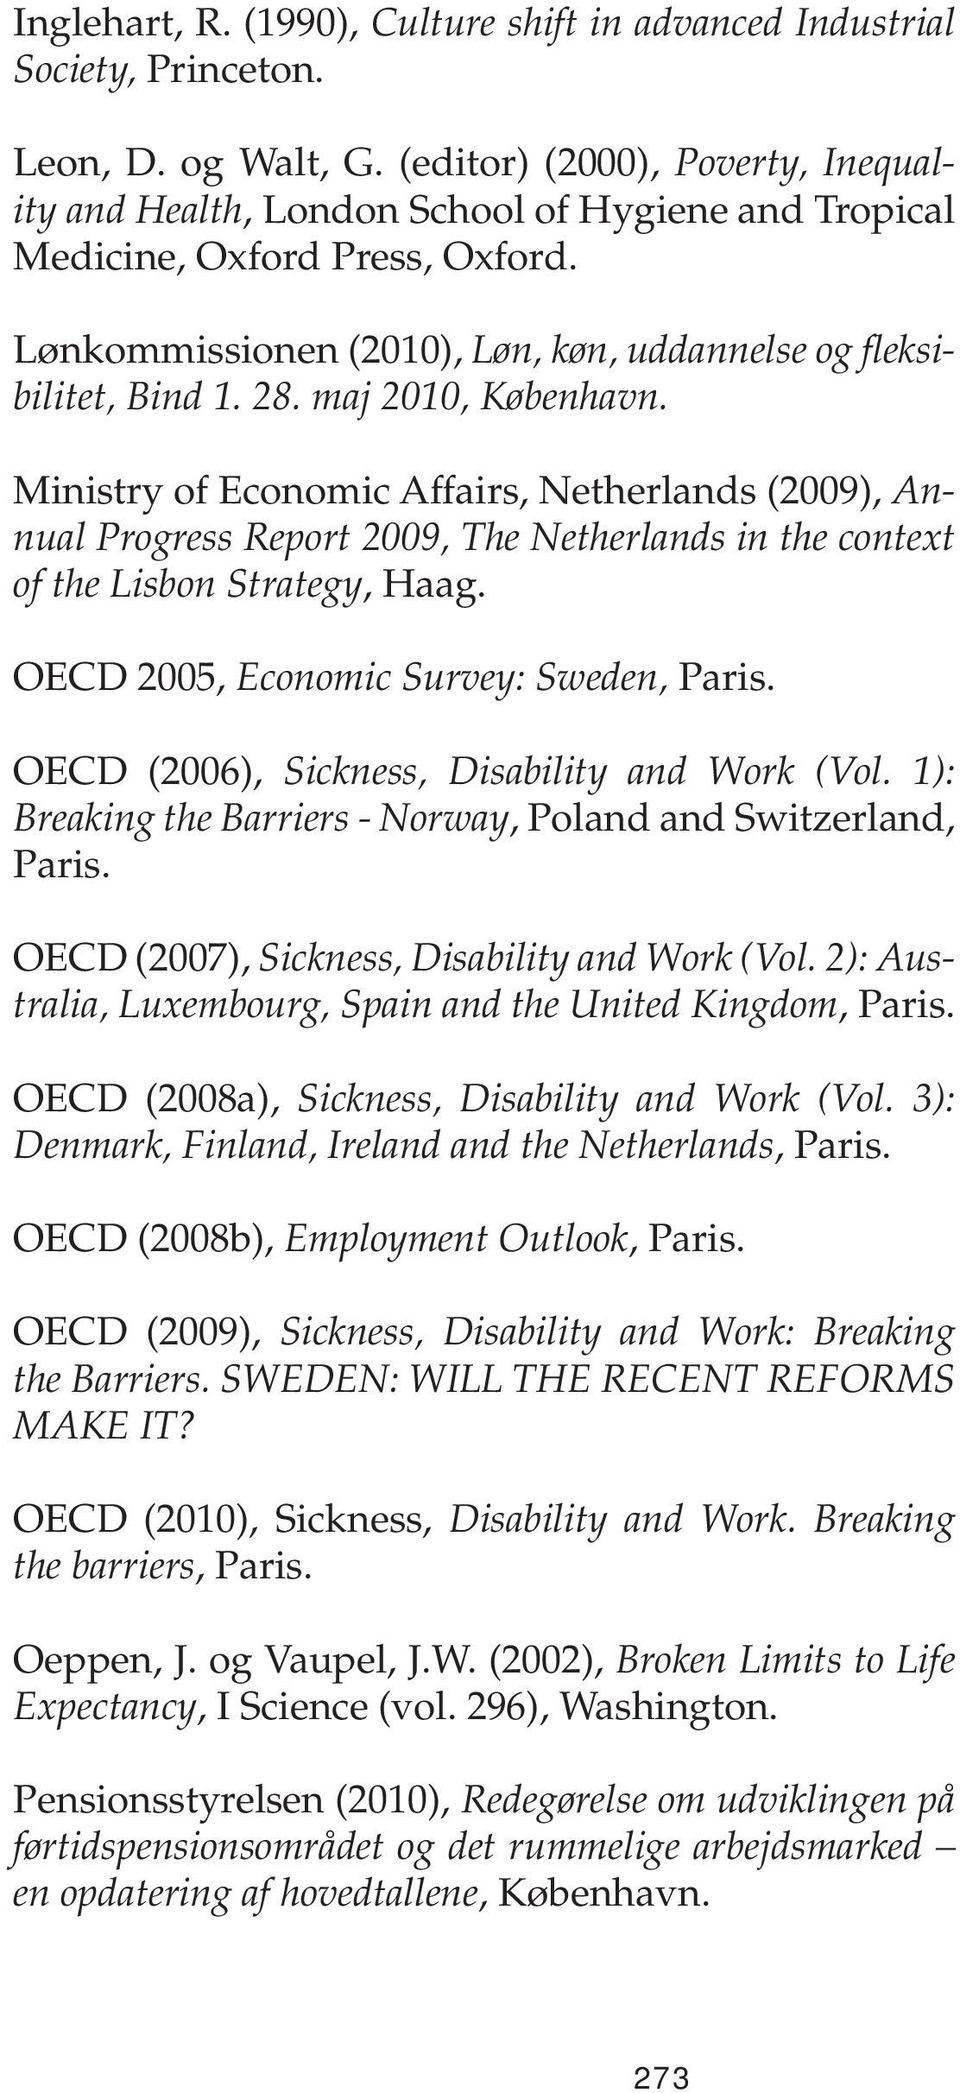 maj 2010, Ministry of Economic Affairs, Netherlands (2009), Annual Progress Report 2009, The Netherlands in the context of the Lisbon Strategy, Haag. OECD 2005, Economic Survey: Sweden, Paris.